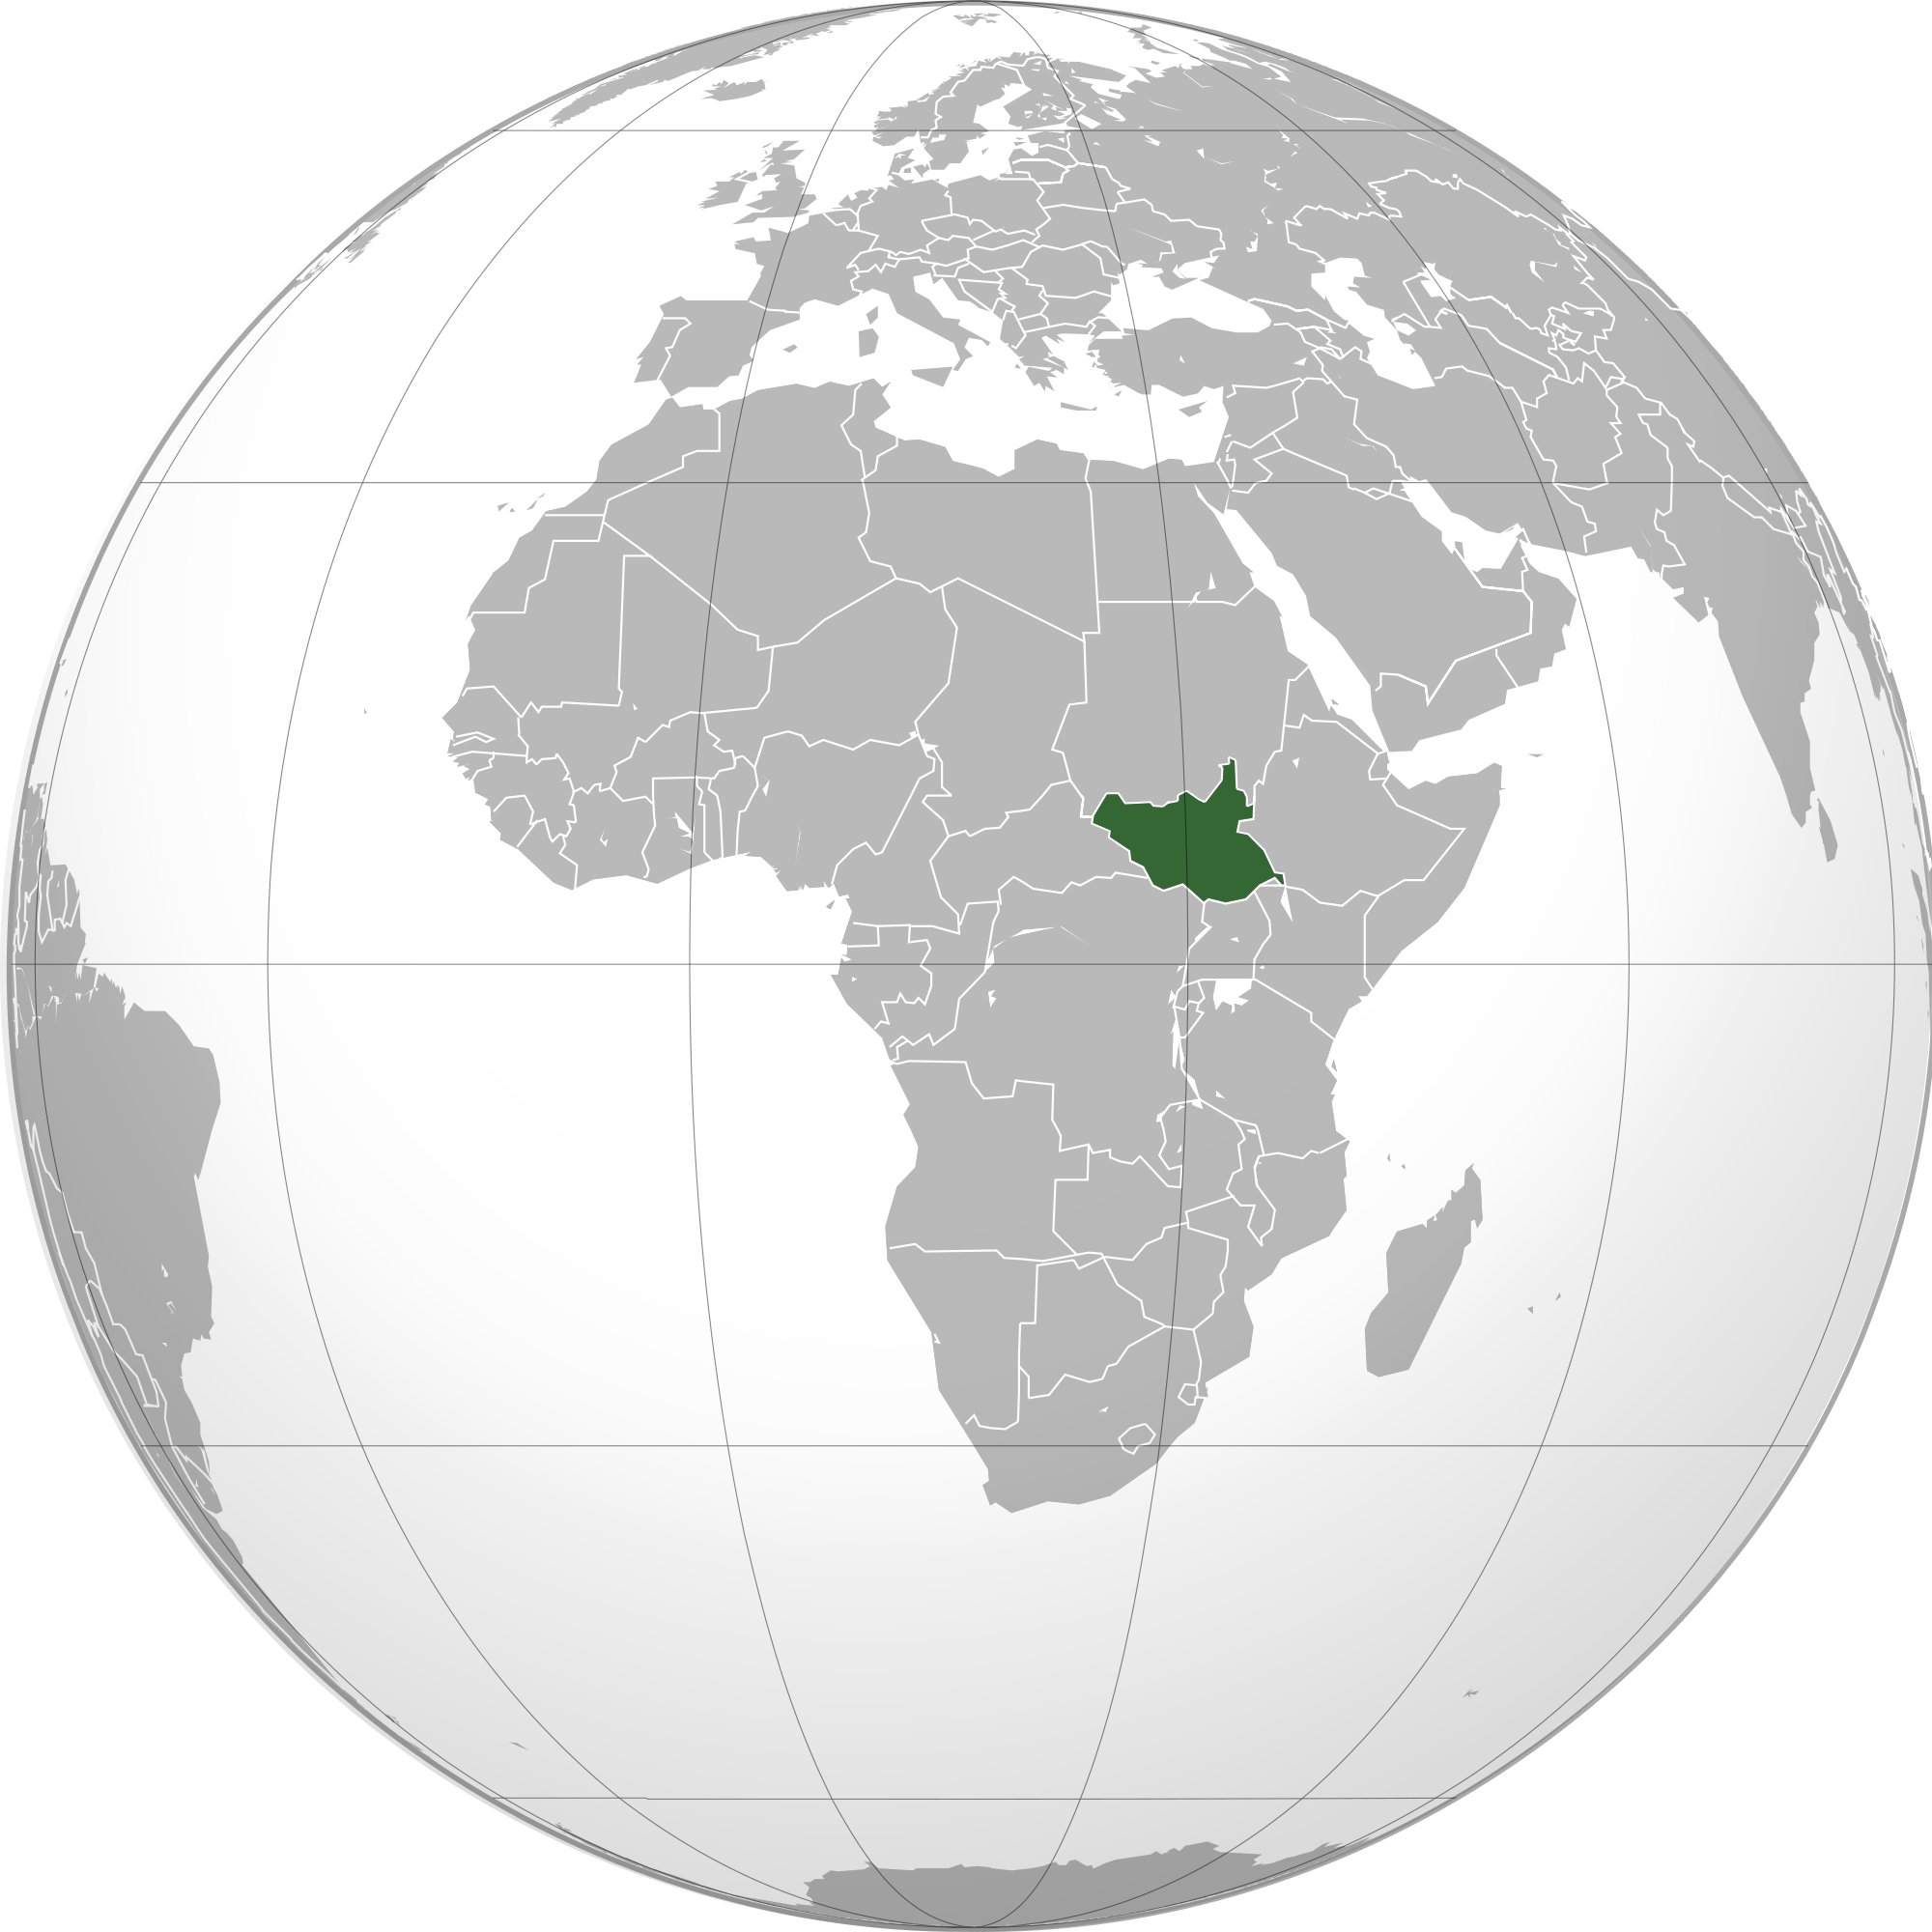 Location of the South Sudan in the World Map